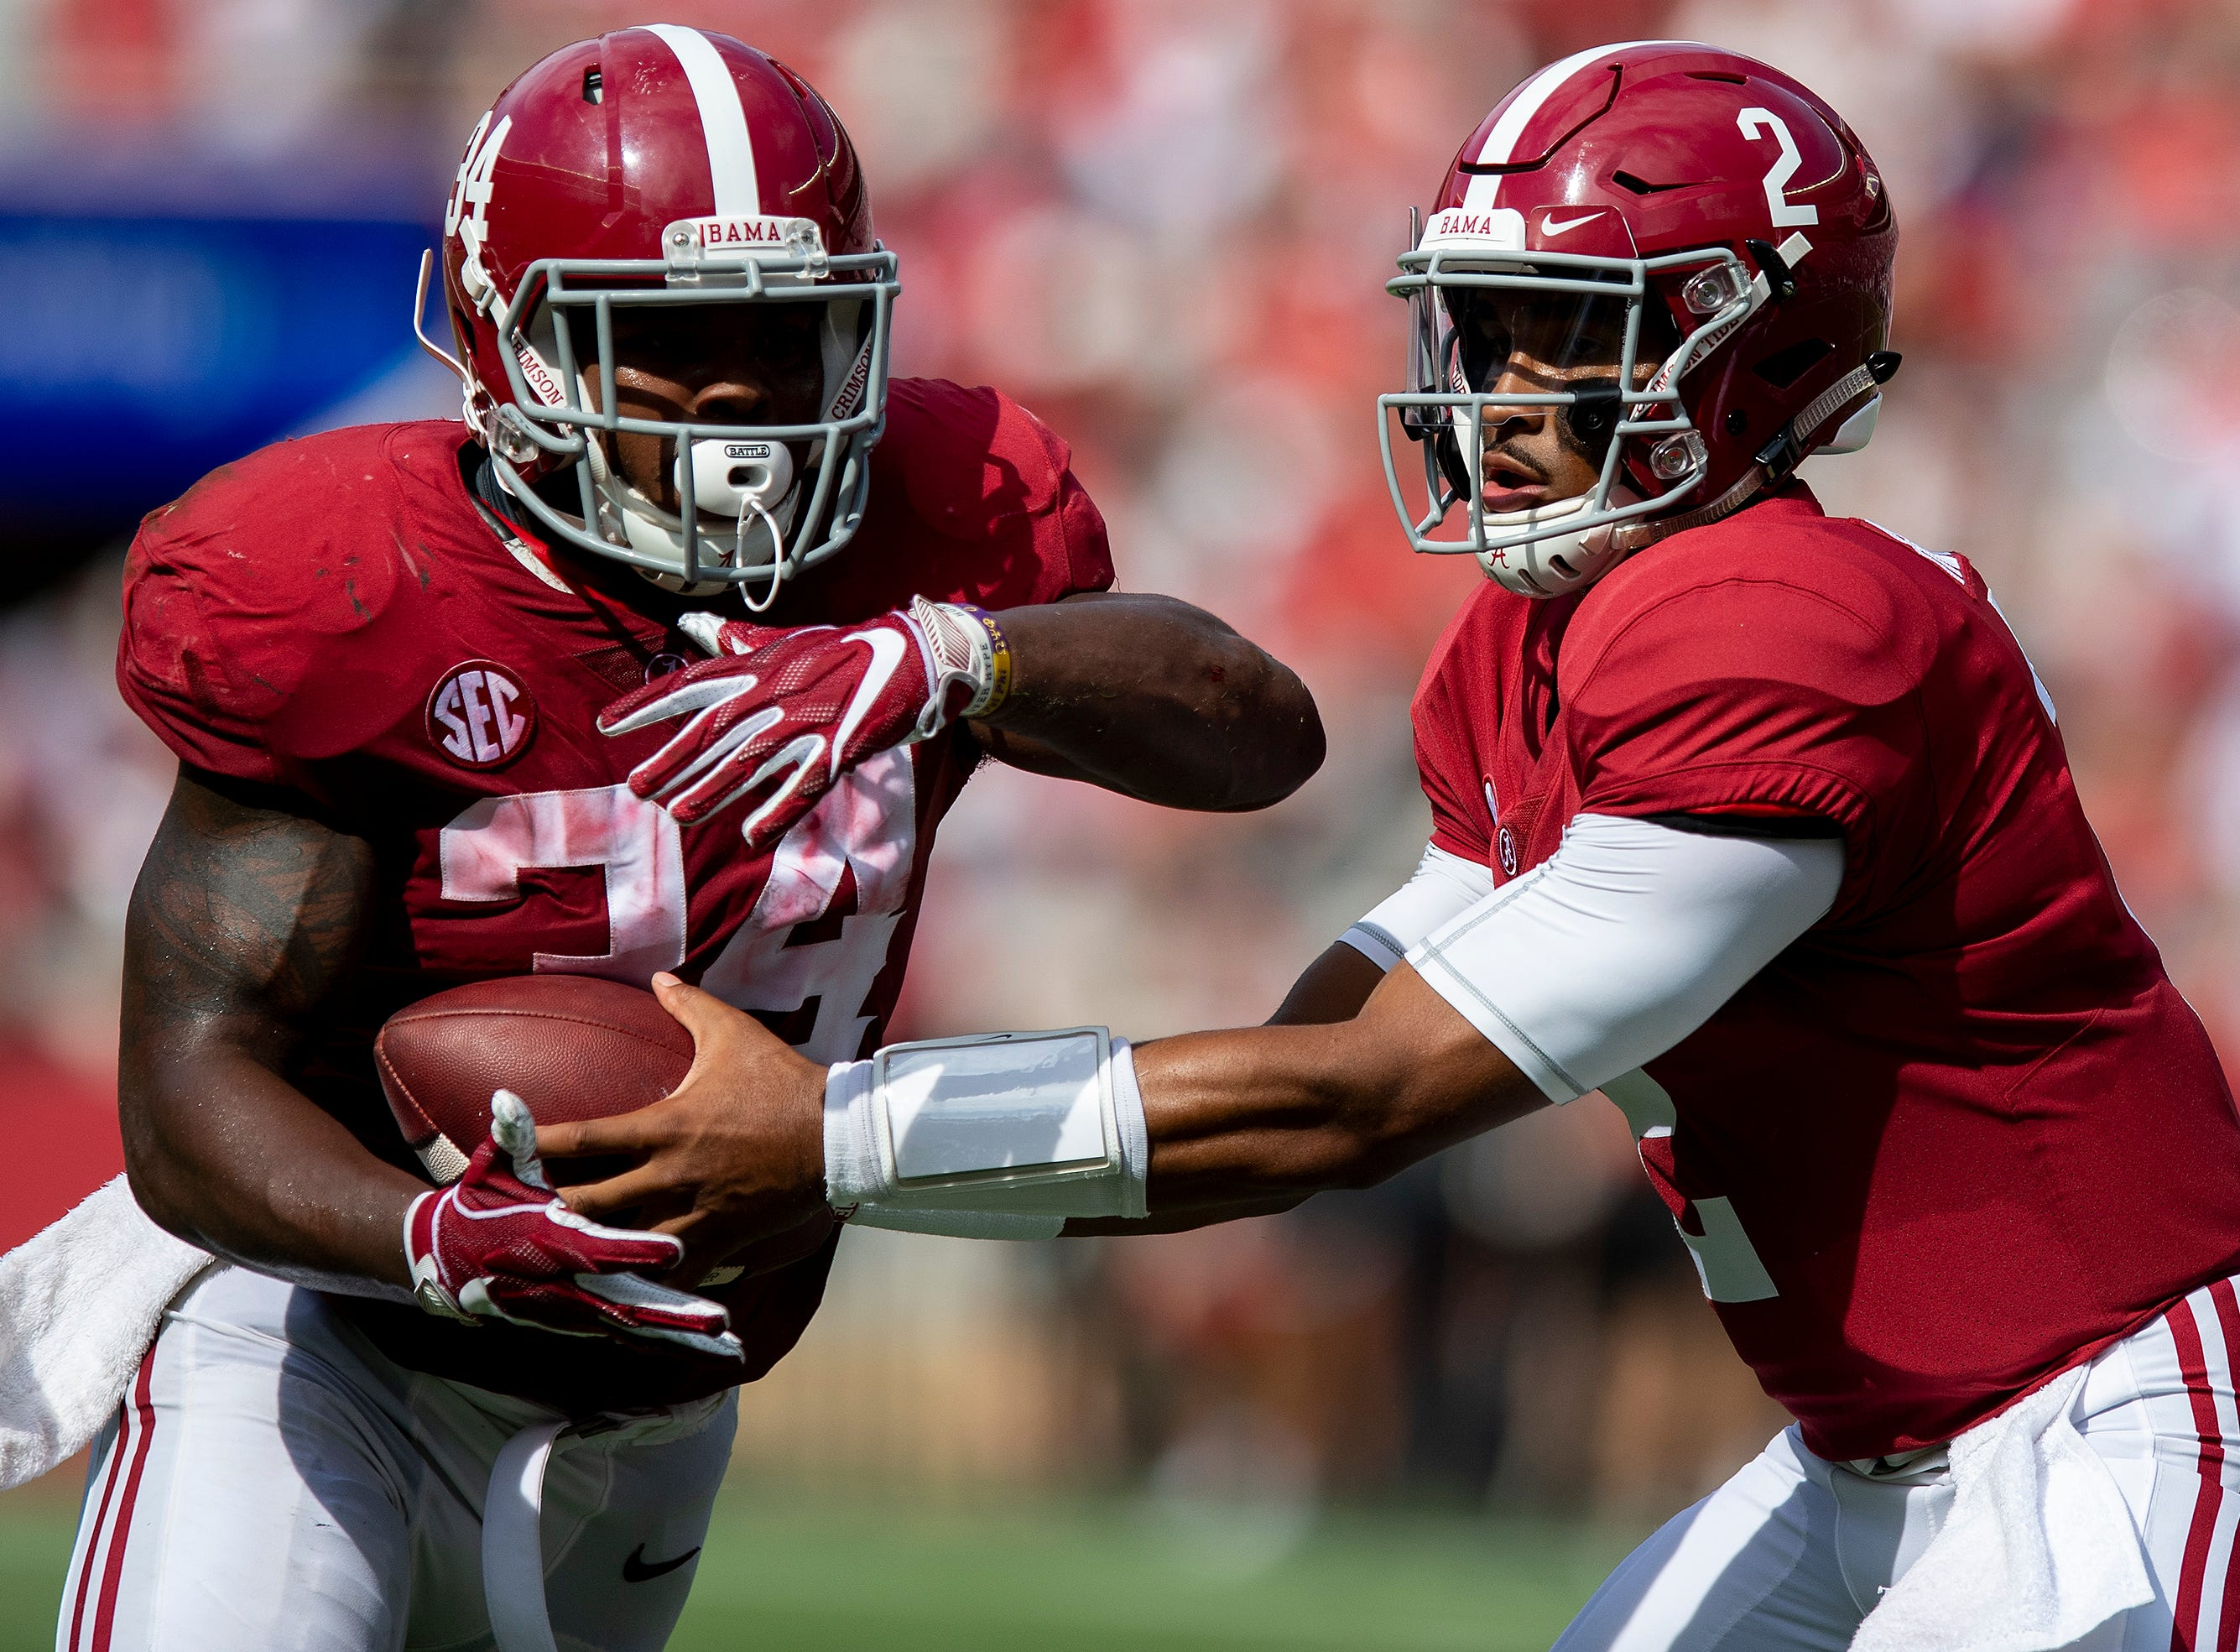 Alabama quarterback Jalen Hurts (2) ands off to Alabama running back Damien Harris (34) in first half action against Arkansas State at Bryant Denny Stadium in Tuscaloosa, Ala., on Saturday September 8, 2018.